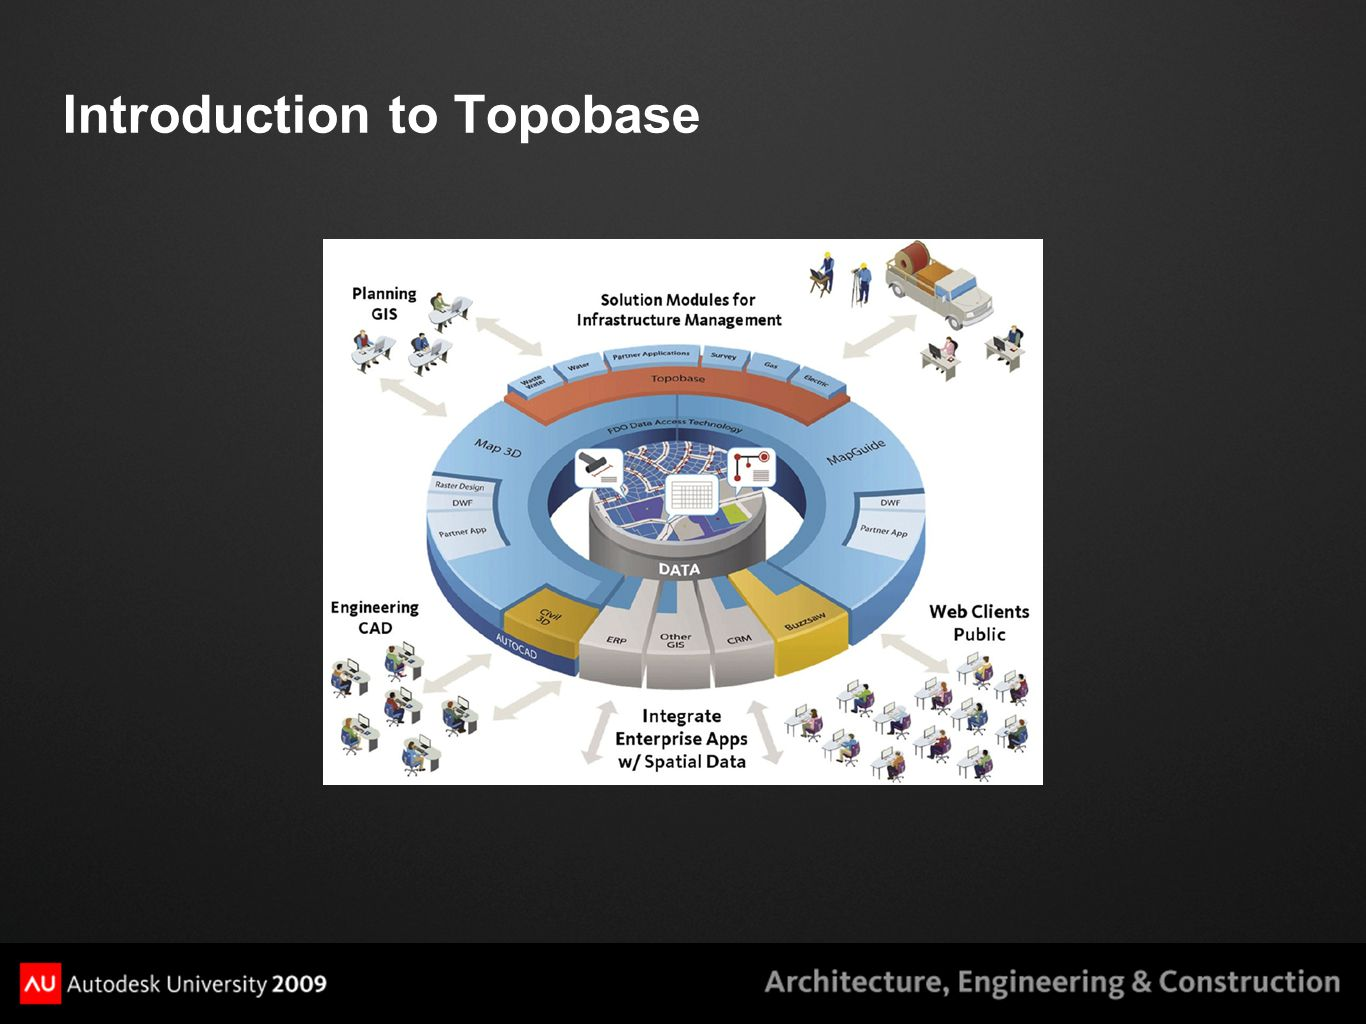 Introduction to Topobase